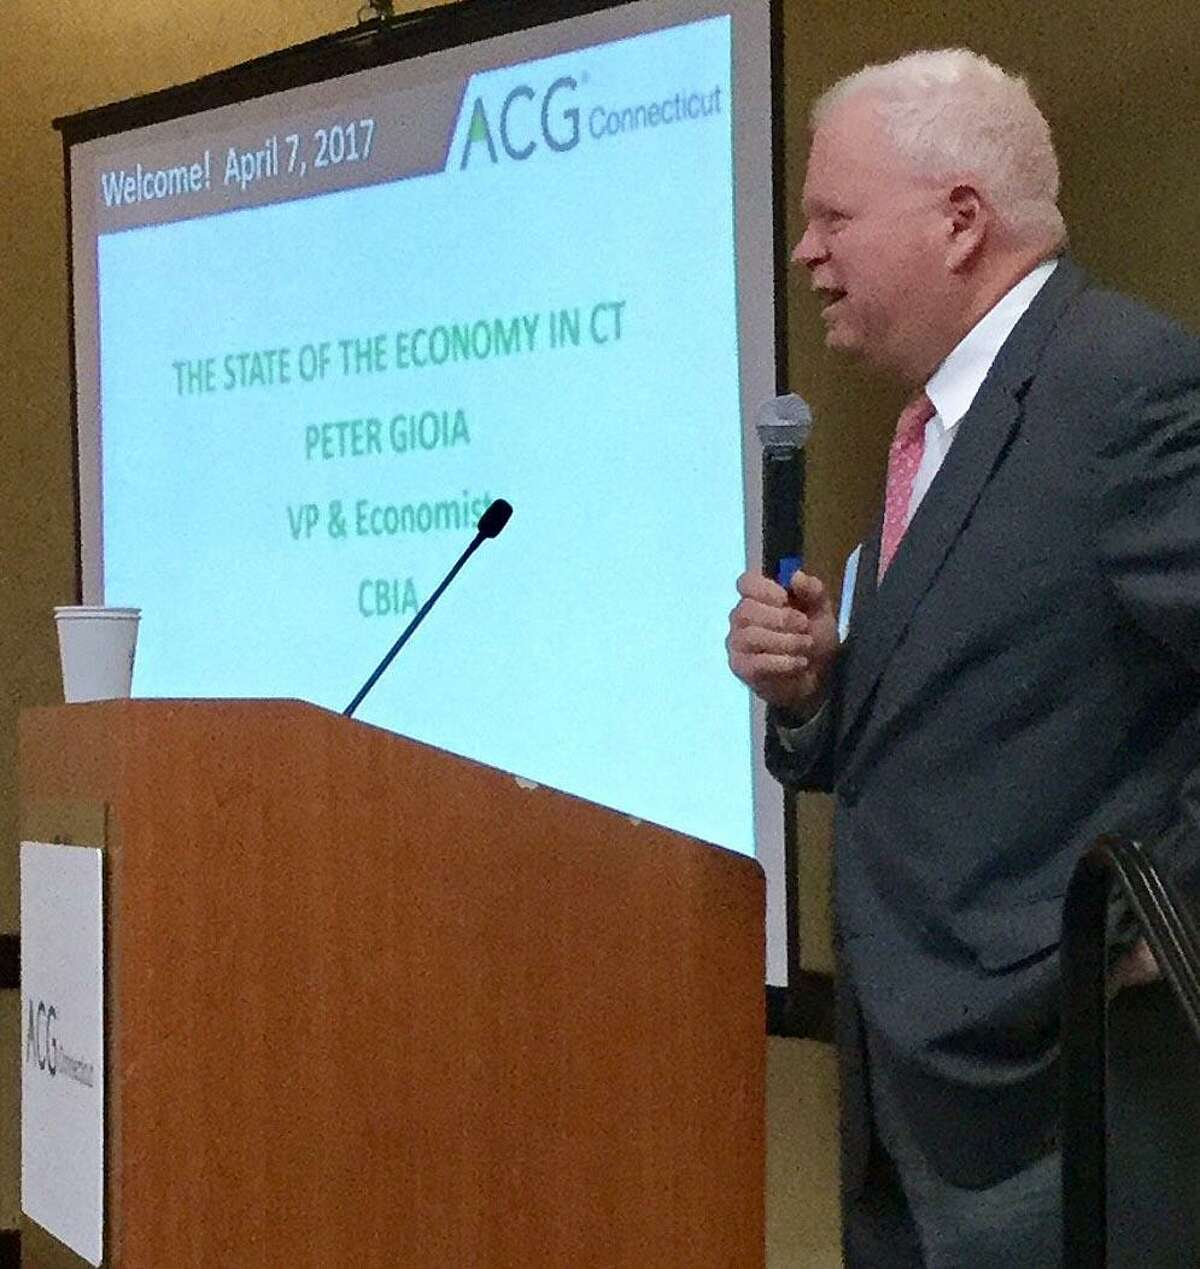 Connecticut Business & Industry Association economist Peter Gioia gives a speech to the Connecticut chapter of the Association for Corporate Growth, on Friday, April 7, 2016, at the Stamford Sheraton hotel.